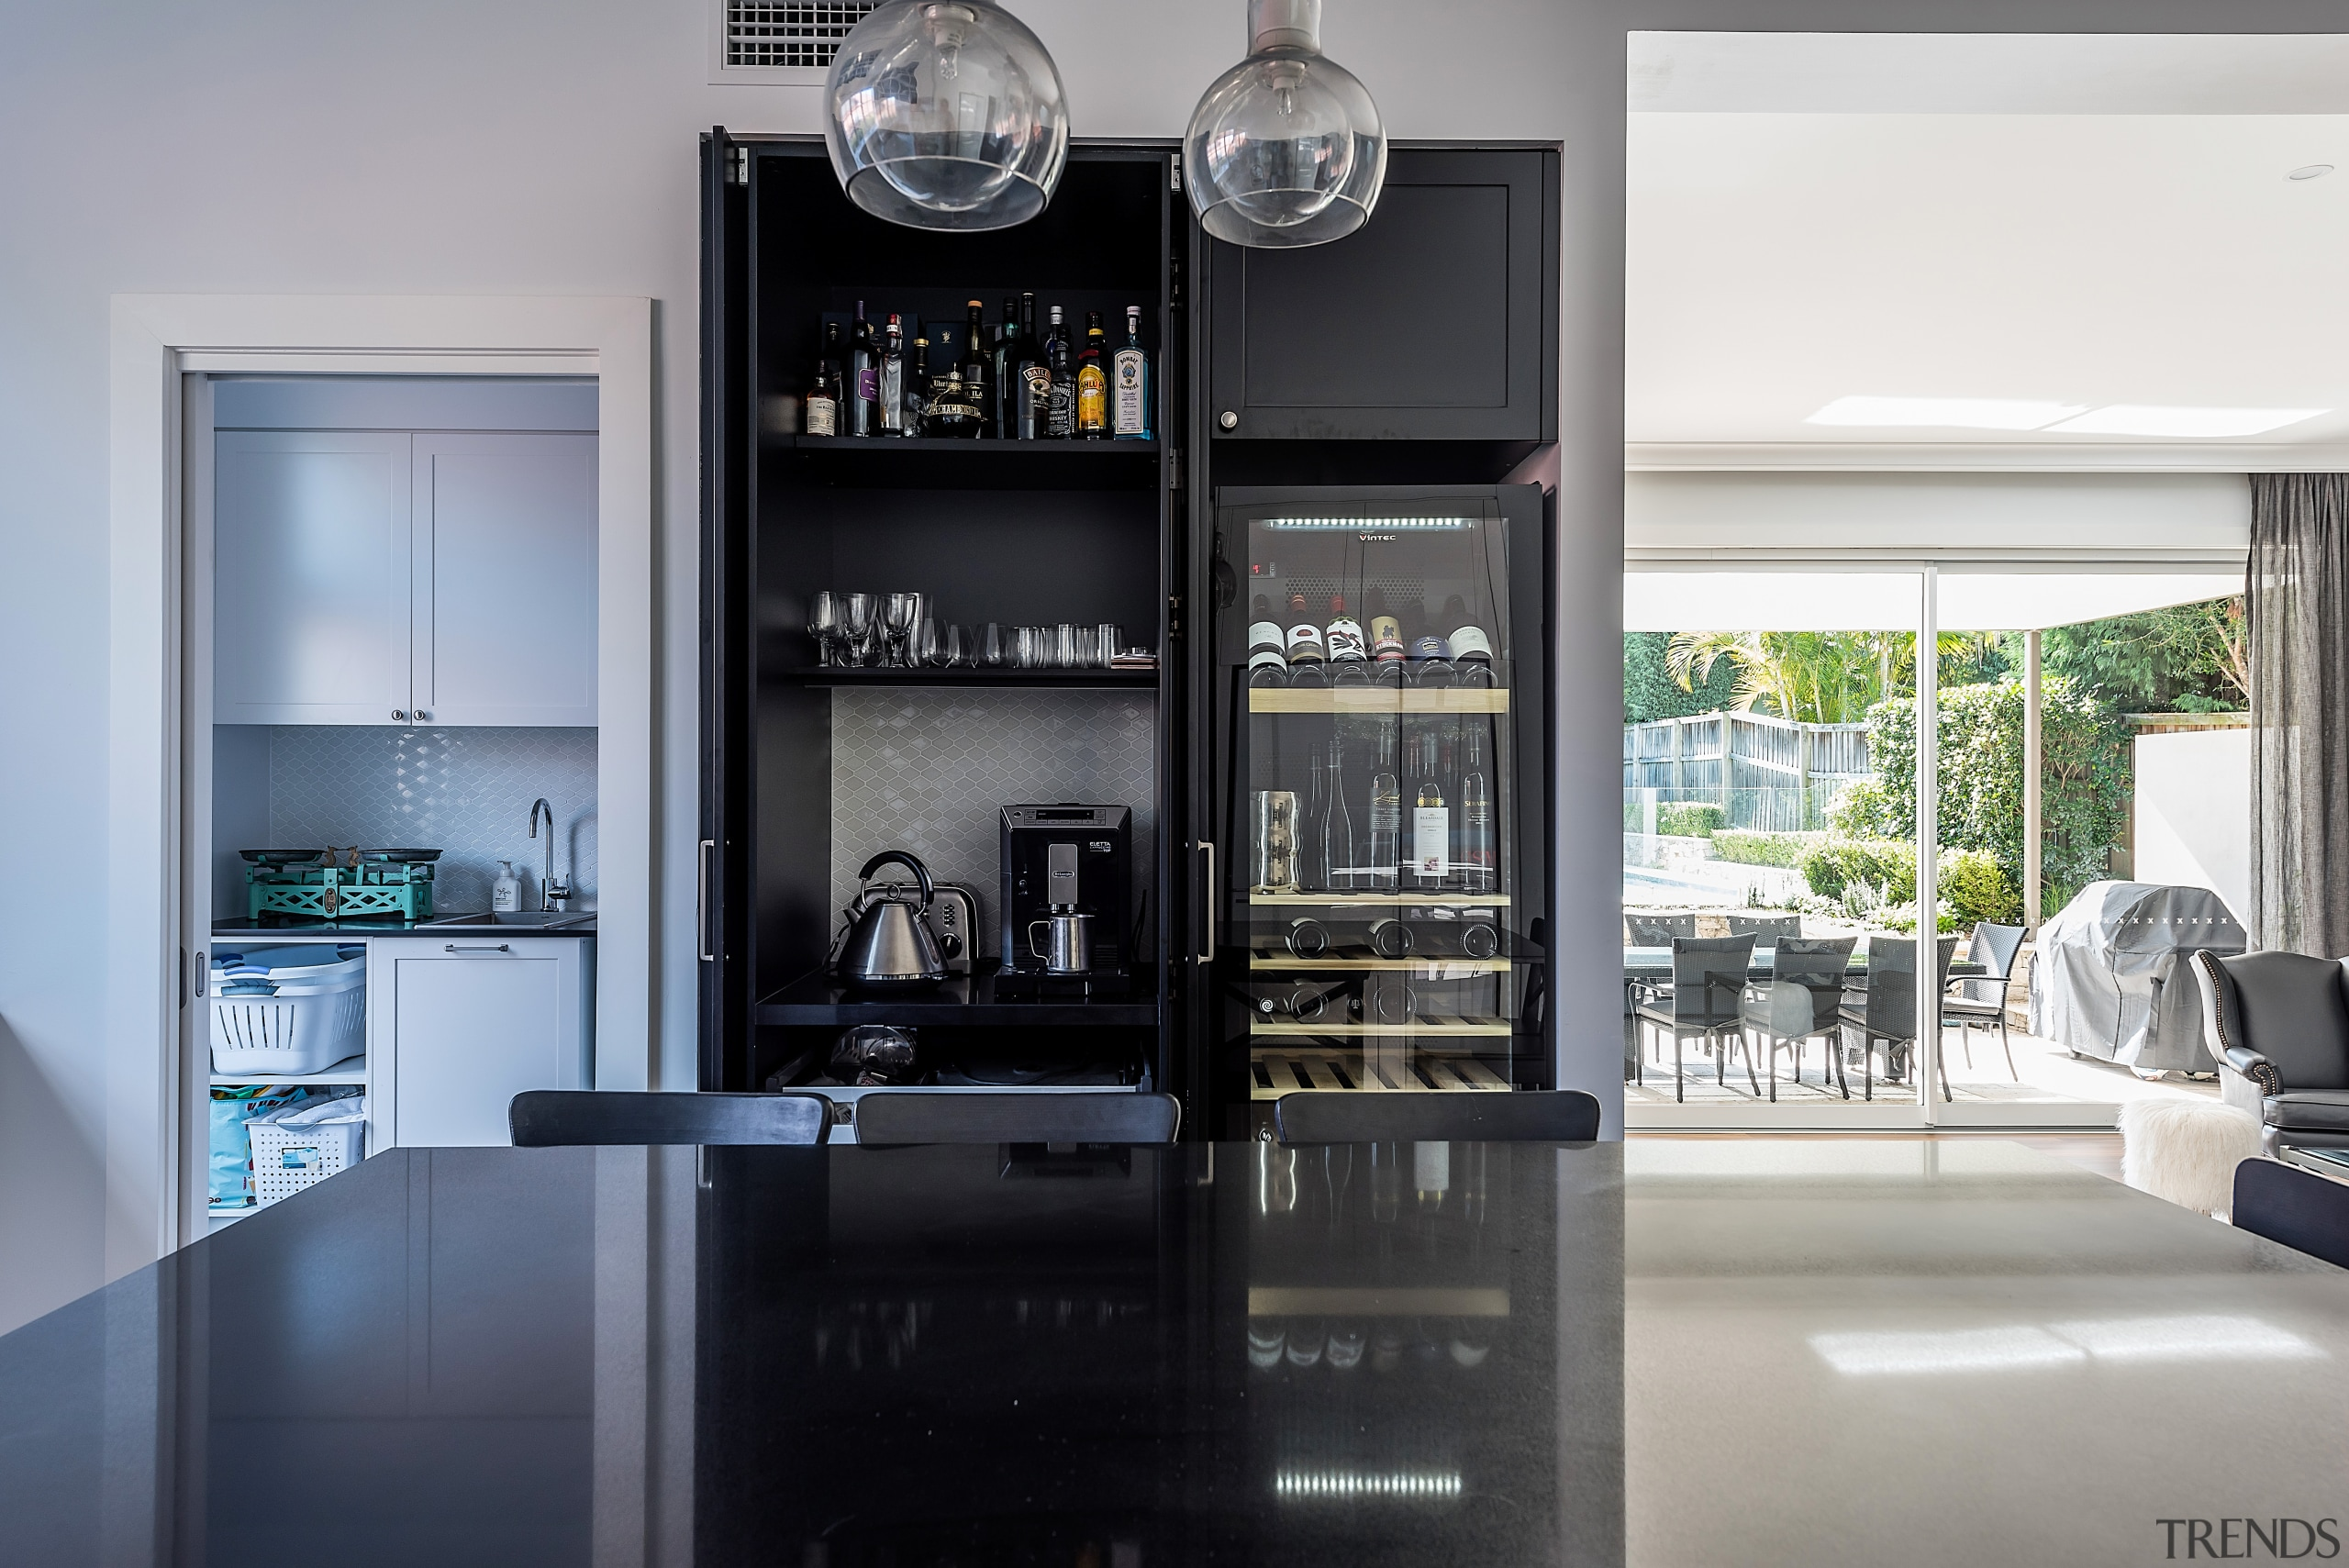 Nz3406Ildesign–287282808 06 - building | cabinetry | ceiling building, cabinetry, ceiling, countertop, furniture, home, house, interior design, kitchen, material property, property, real estate, room, shelf, gray, black